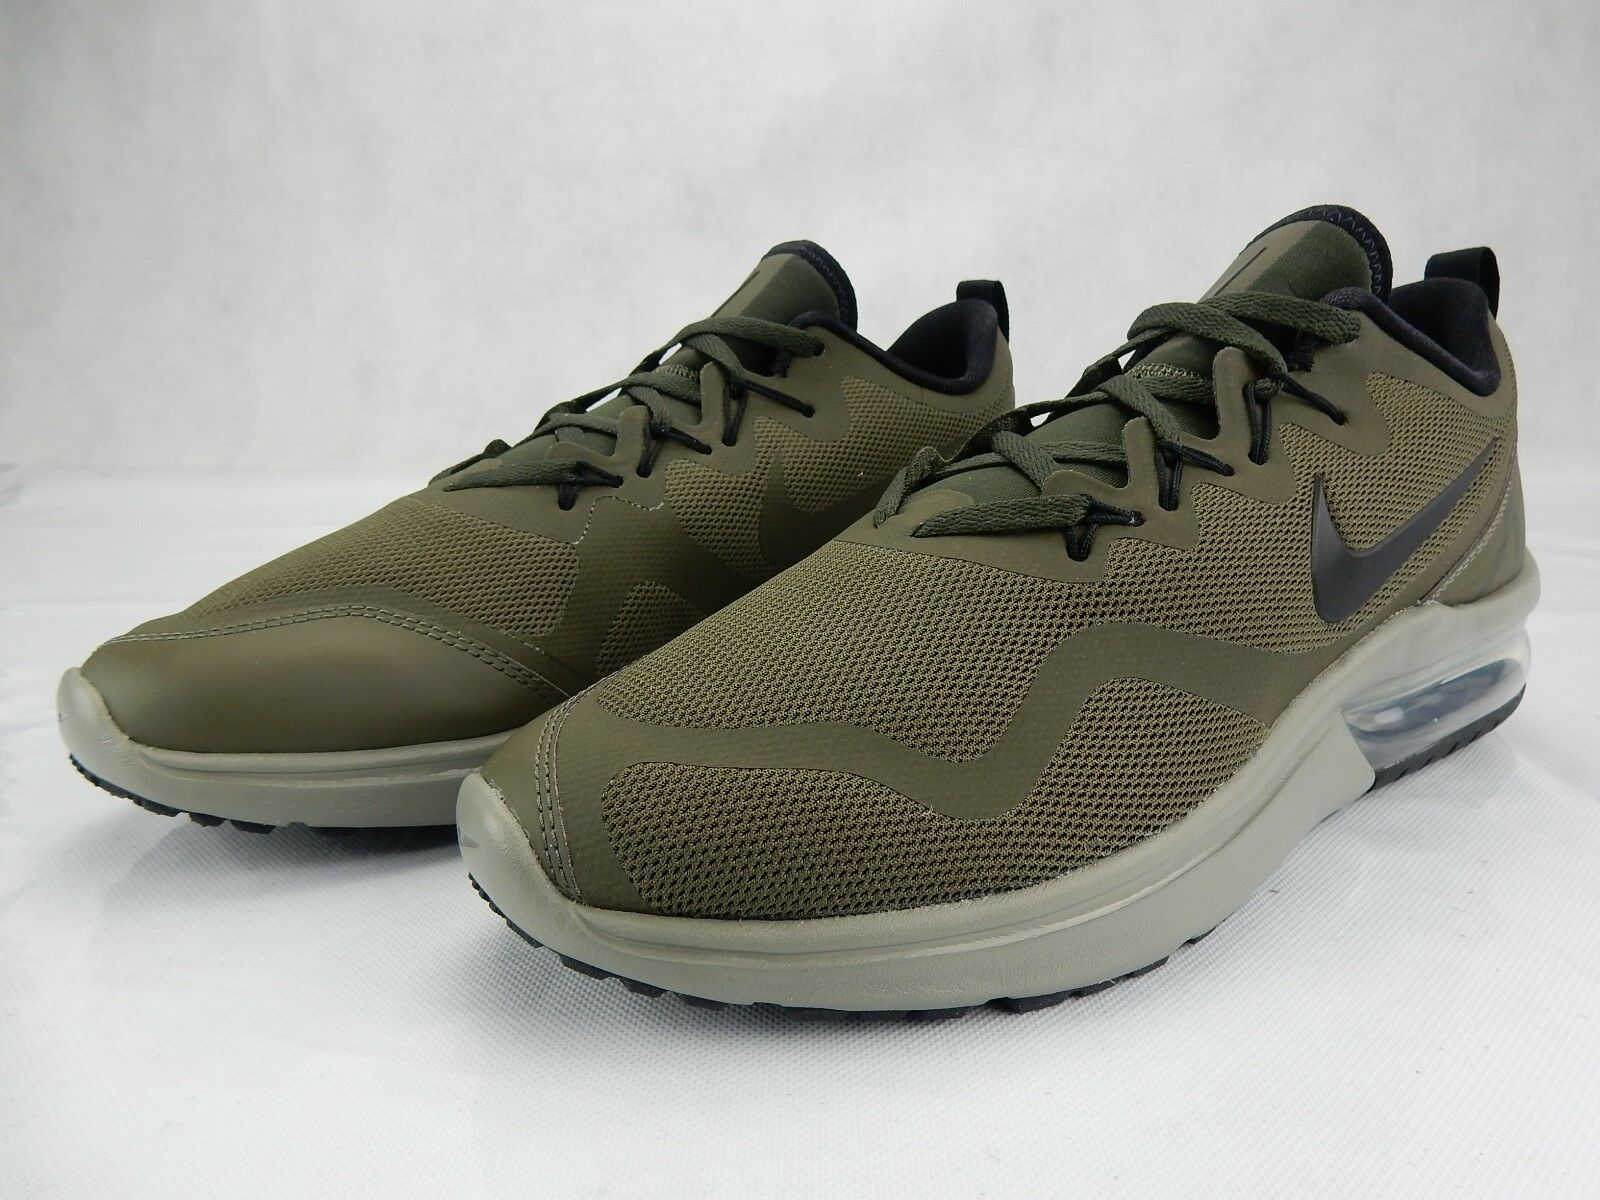 Nike Air Max Fury Cargo Khaki Black AA5739-300 Shoes Mens Shoes AA5739-300 S Size 10 New Sneakers a38111